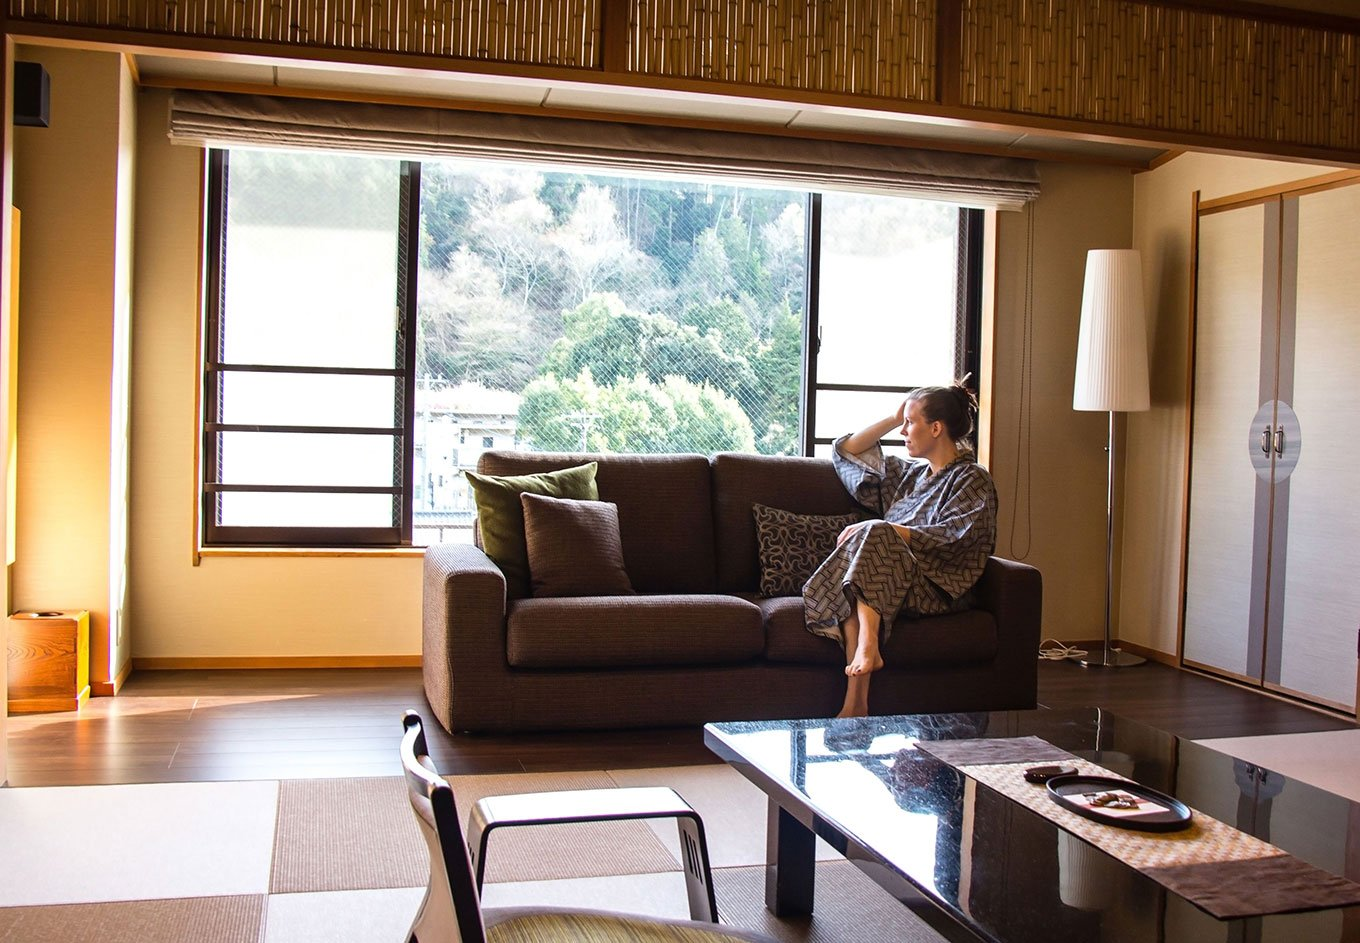 Room at a traditional ryokan in Japan.